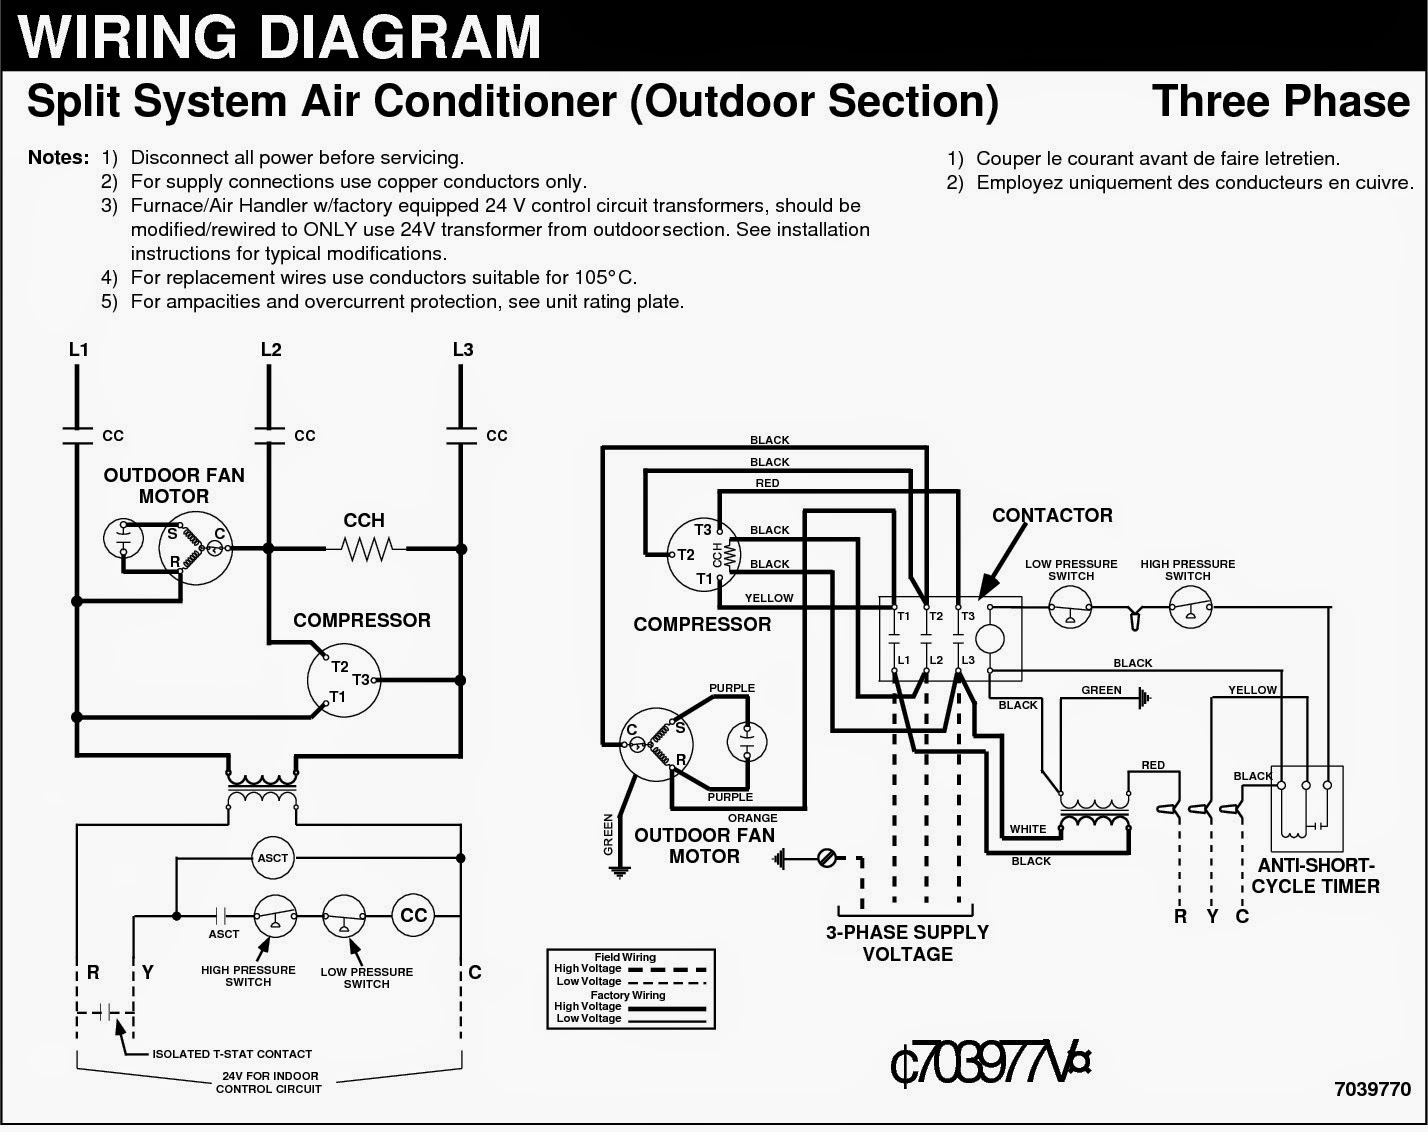 3+phase electrical wiring diagrams for air conditioning systems part two electrical installation wiring diagrams at cos-gaming.co